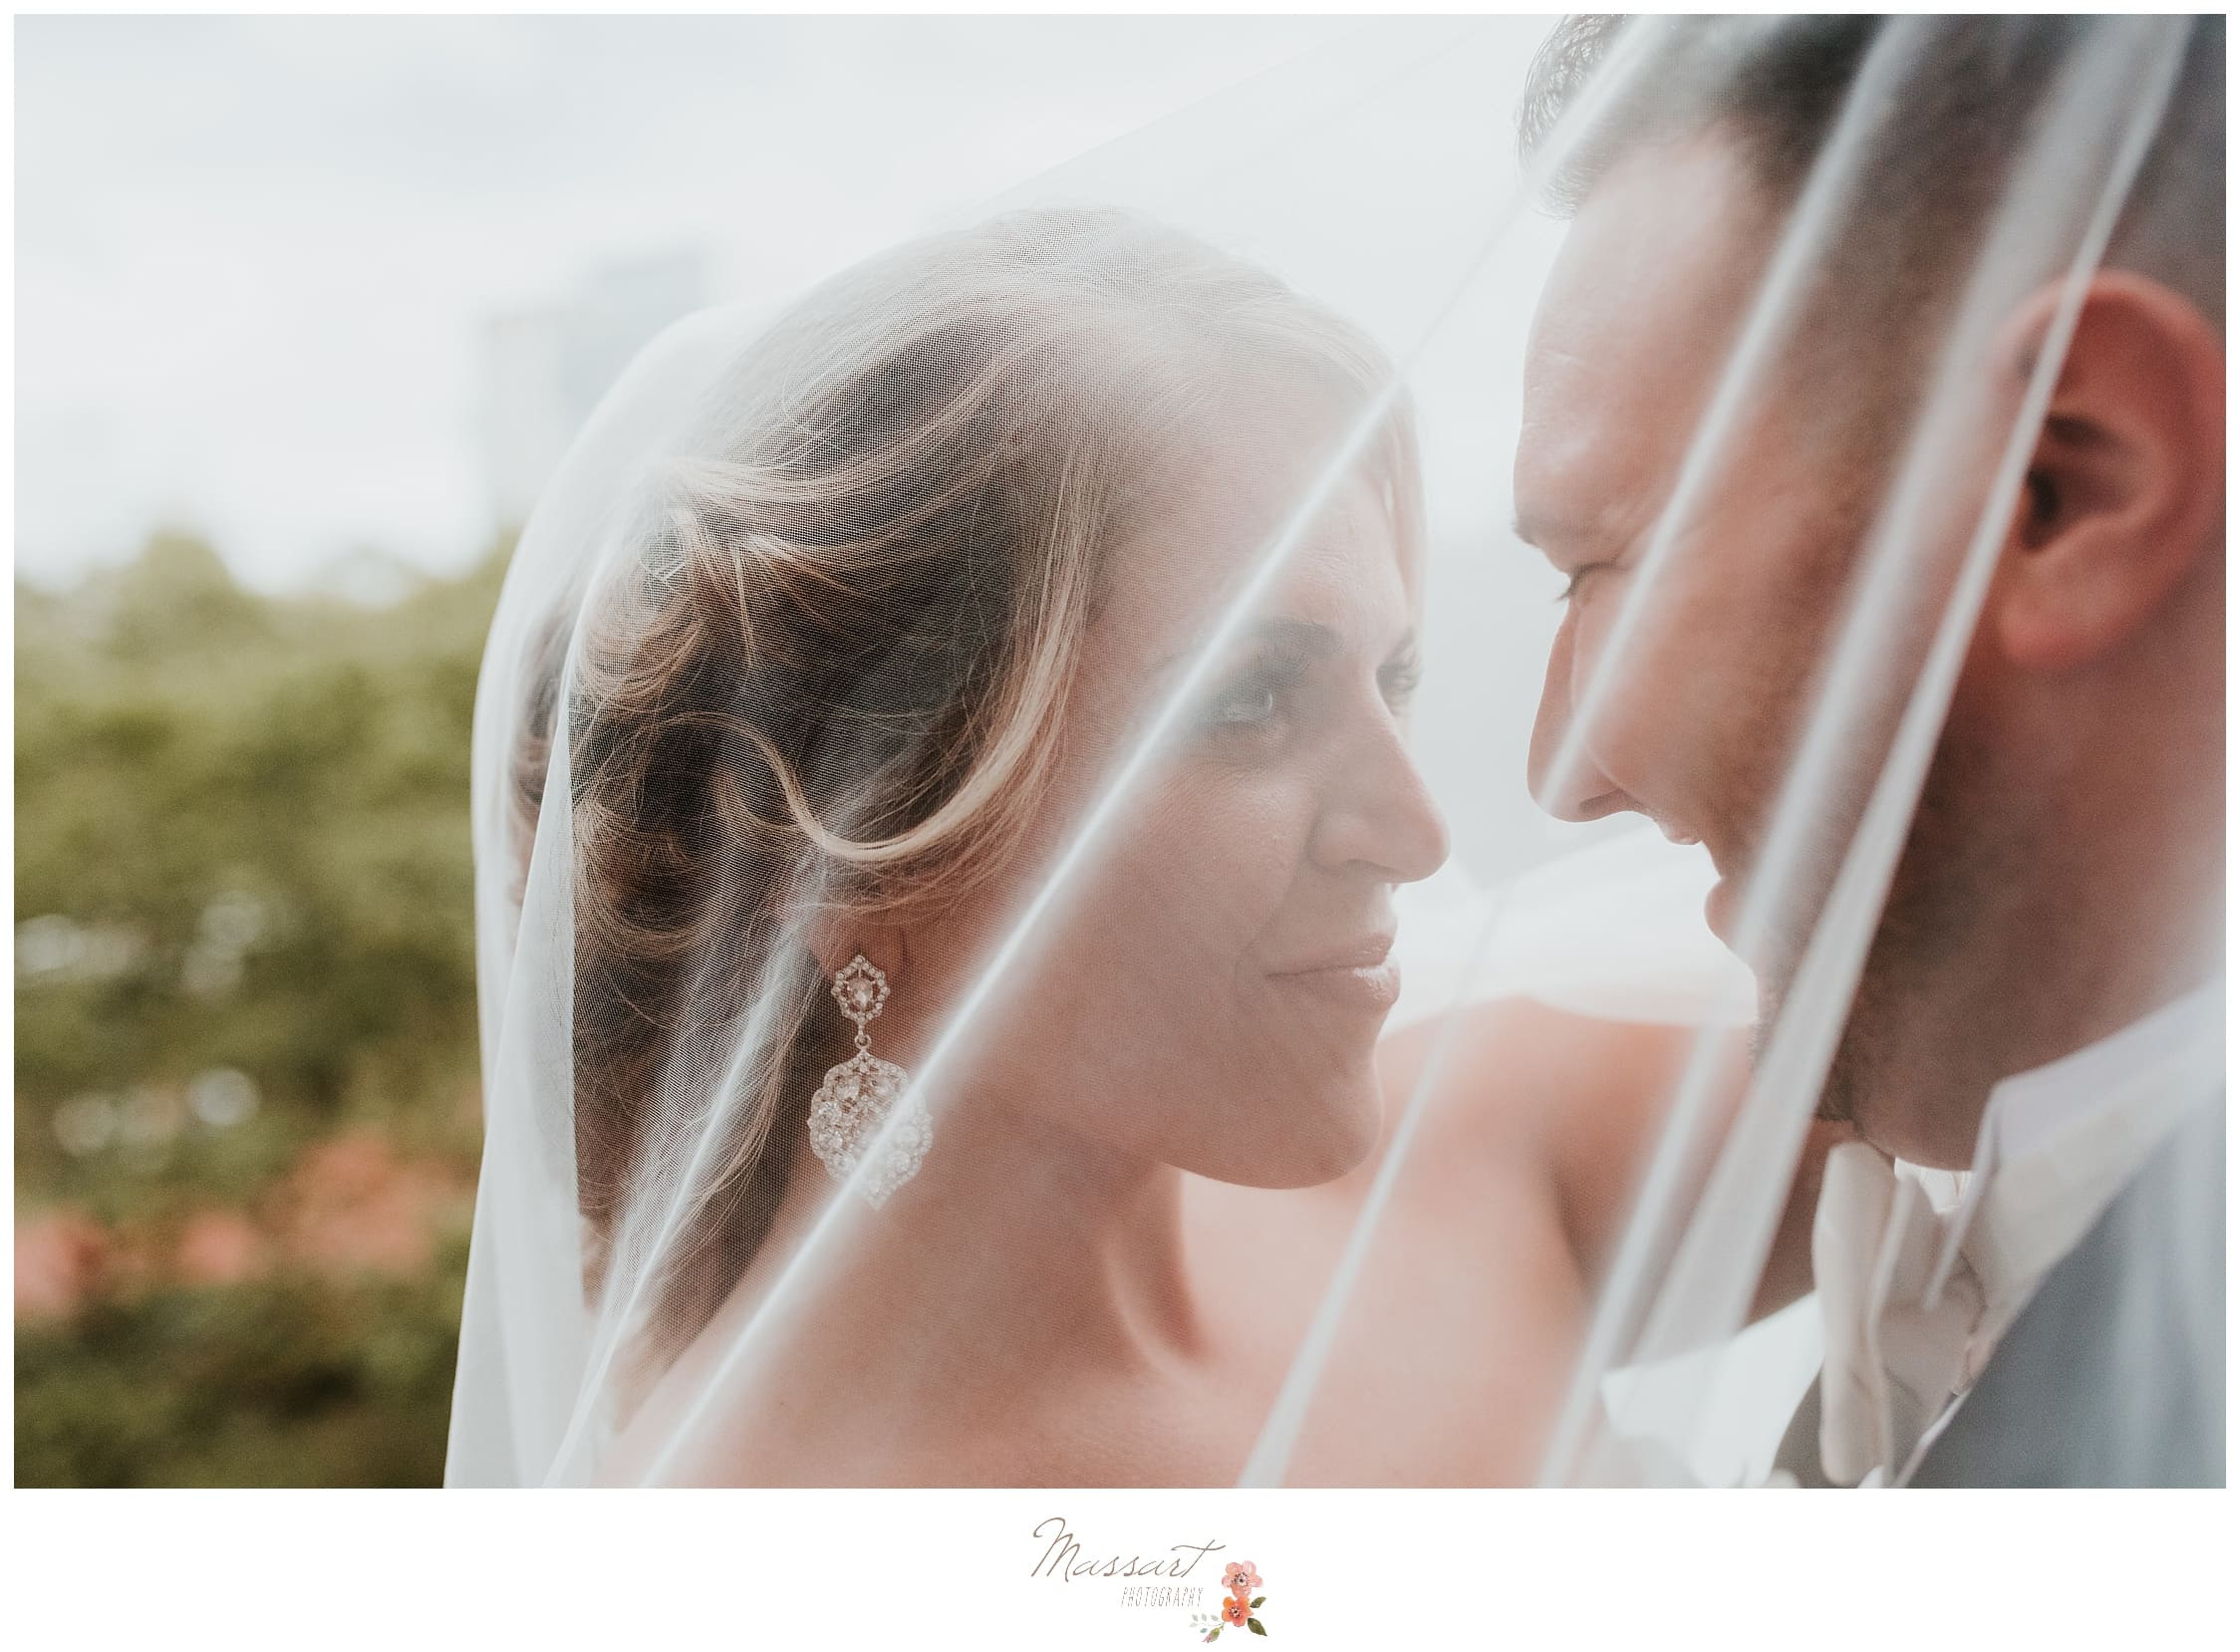 Portraits through the bride's veil photographed by Massart Photography RI